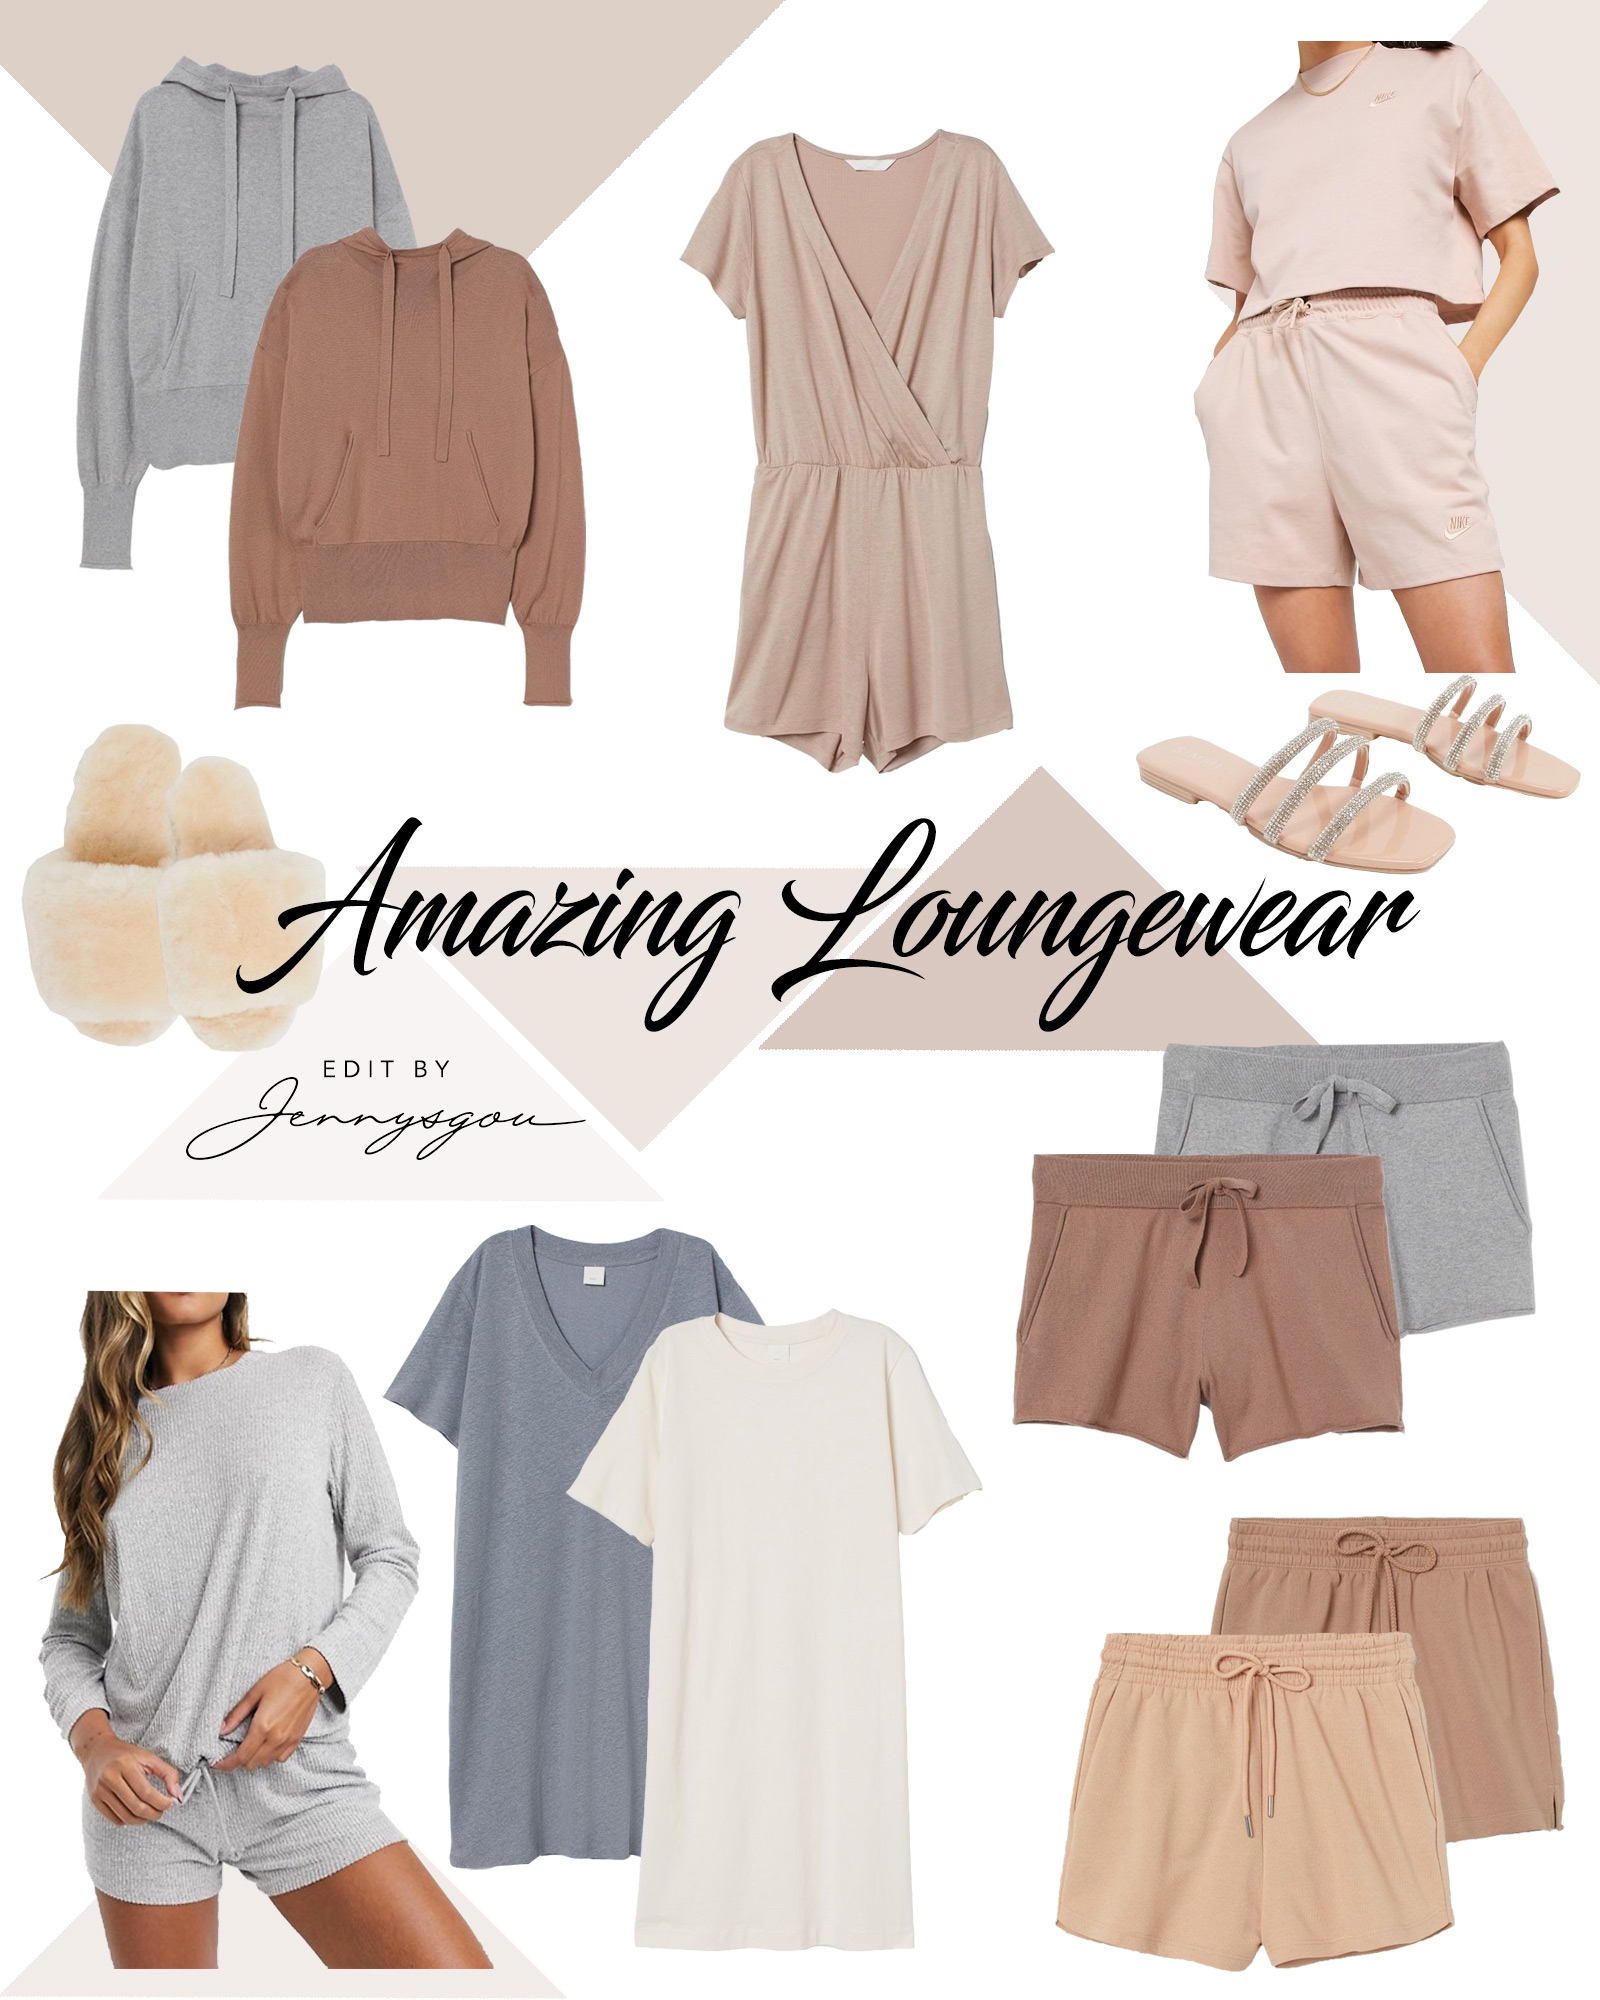 Lately, I've been on a crush with beige, mocca, cappuccino, and Sahara tones. Generally, earth tones are so relaxing to the eye and help us achieve our goal at home, which is to clean our thoughts and minds, relax and feel good. Below you will find some of the best loungewear for women that got my attention in spring 2020. The short sets, whether cashmere, cotton or jersey, are so cute. Fur slippers and flip flops are also a must.